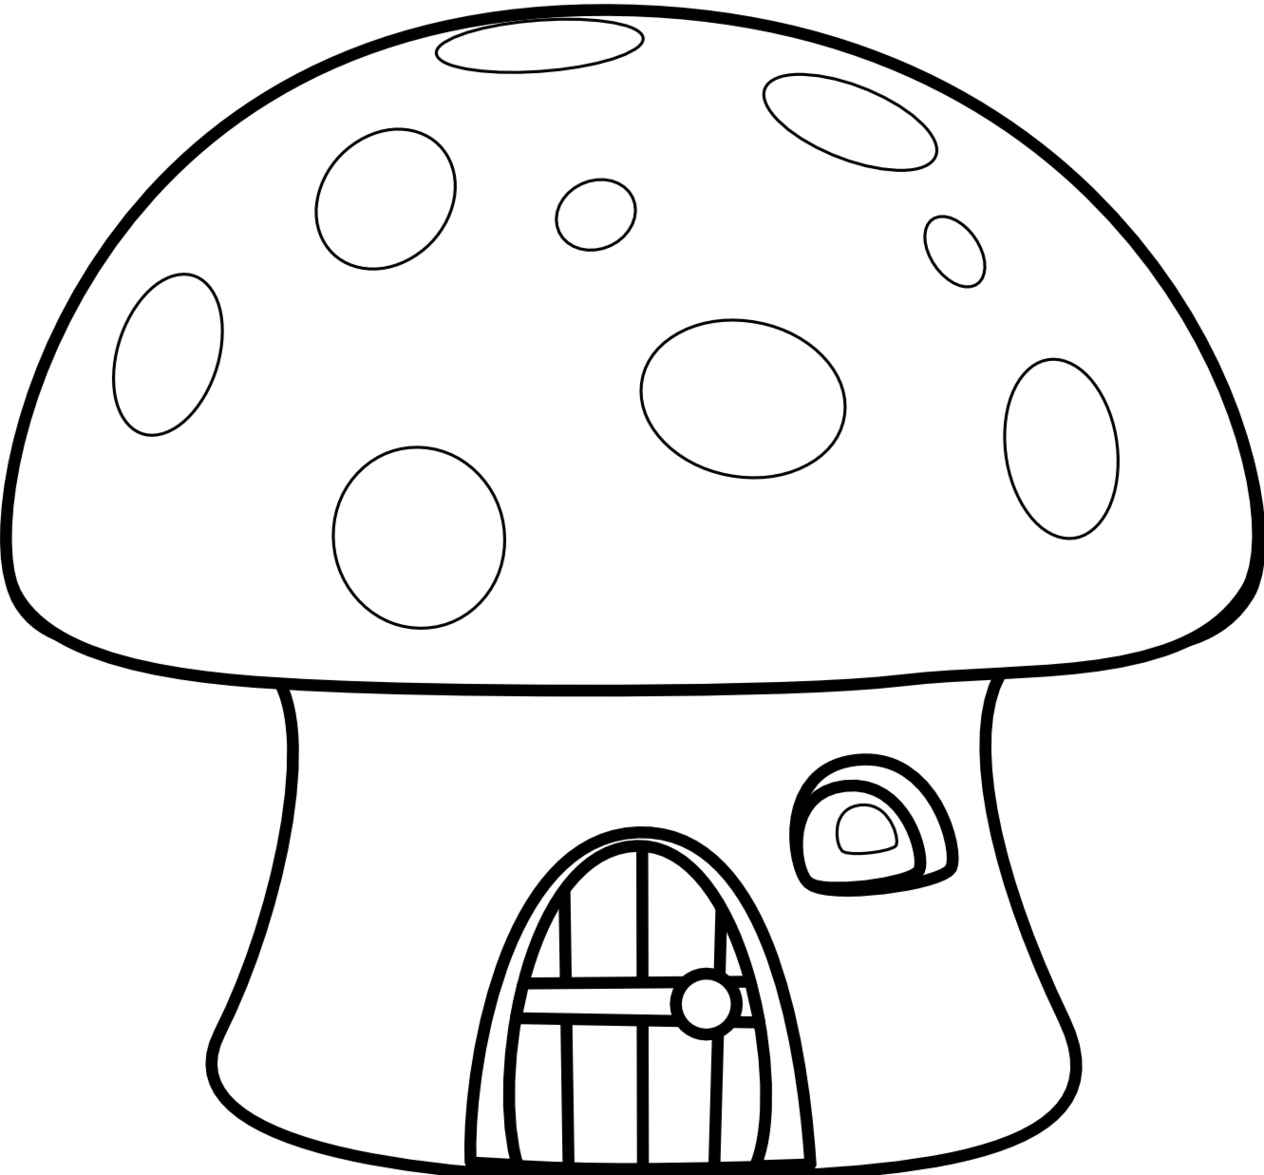 Similiar Black And White Mushroom Clip Art Keywords.